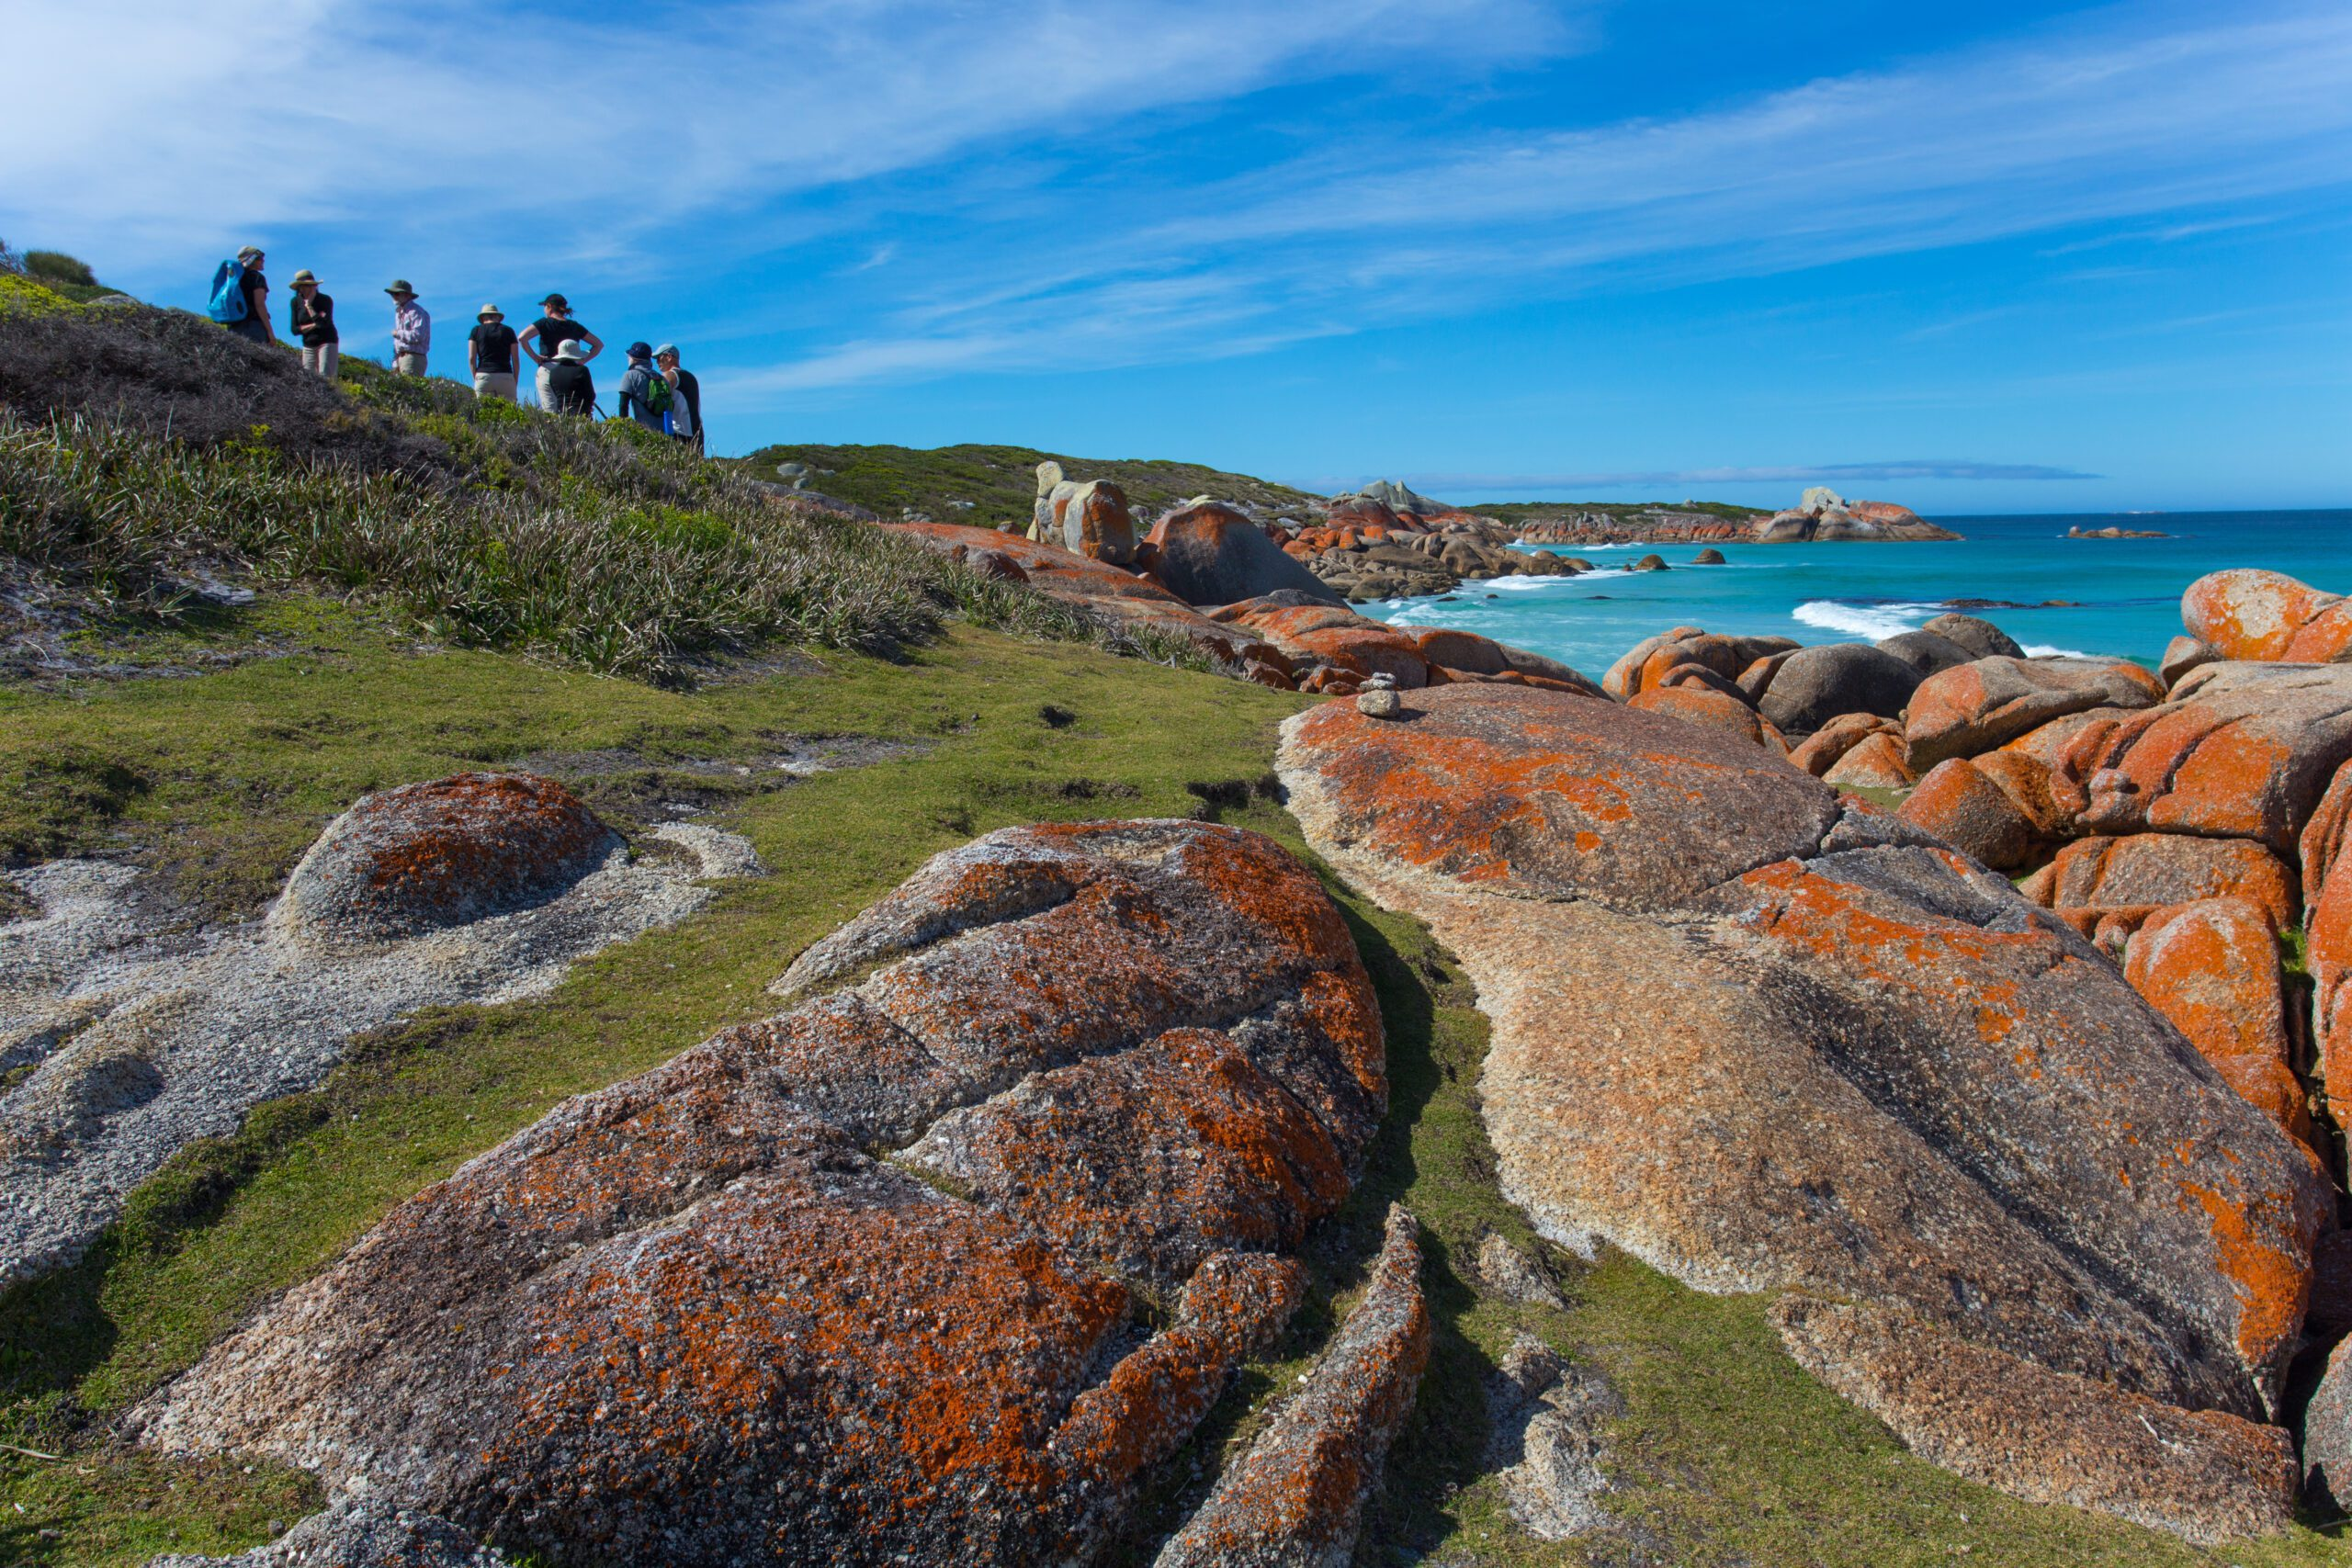 people walking in the distance with lichen covered rocks and beach in the foreground on a hiking and climbing safari